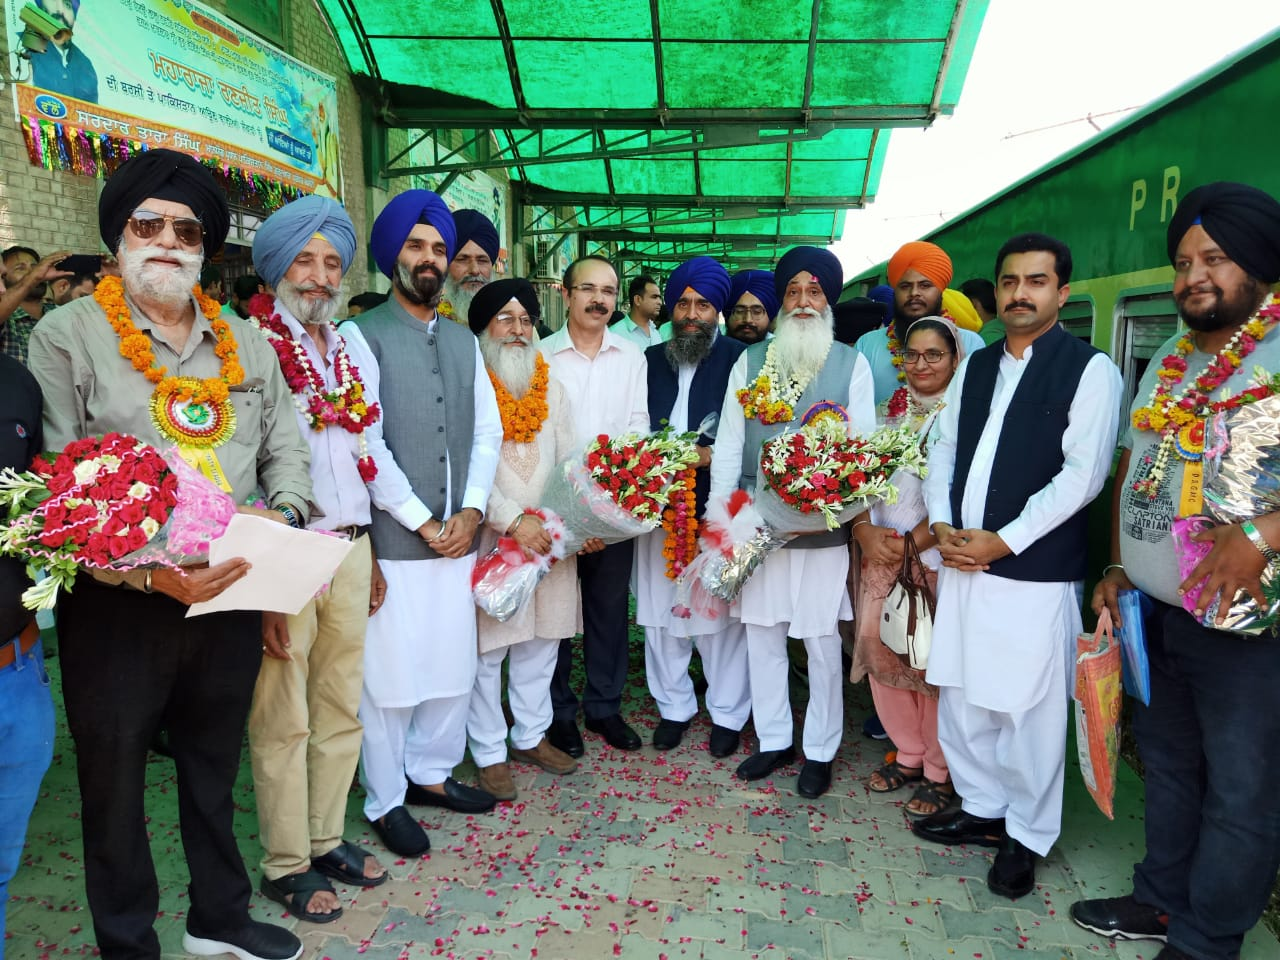 Sikh Pilgrimiges Welcomed in Pakistan